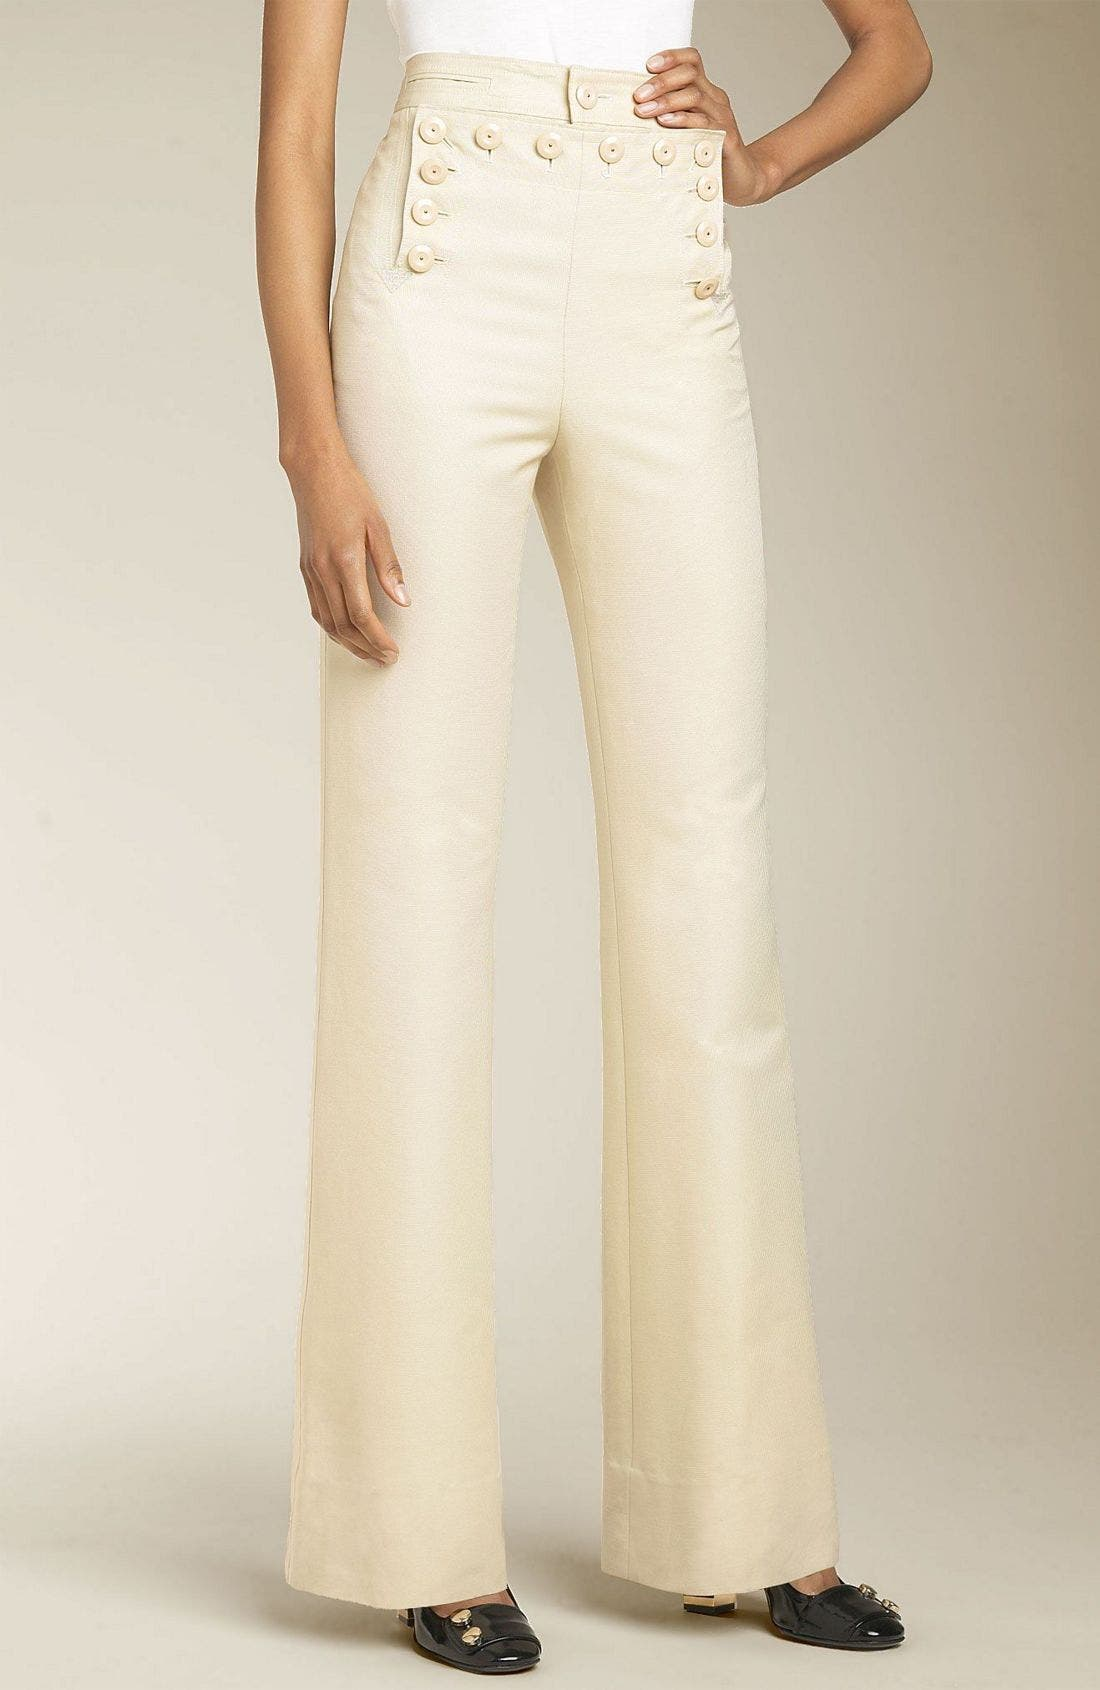 Alternate Image 1 Selected - MARC BY MARC JACOBS Faille Sailor Pants